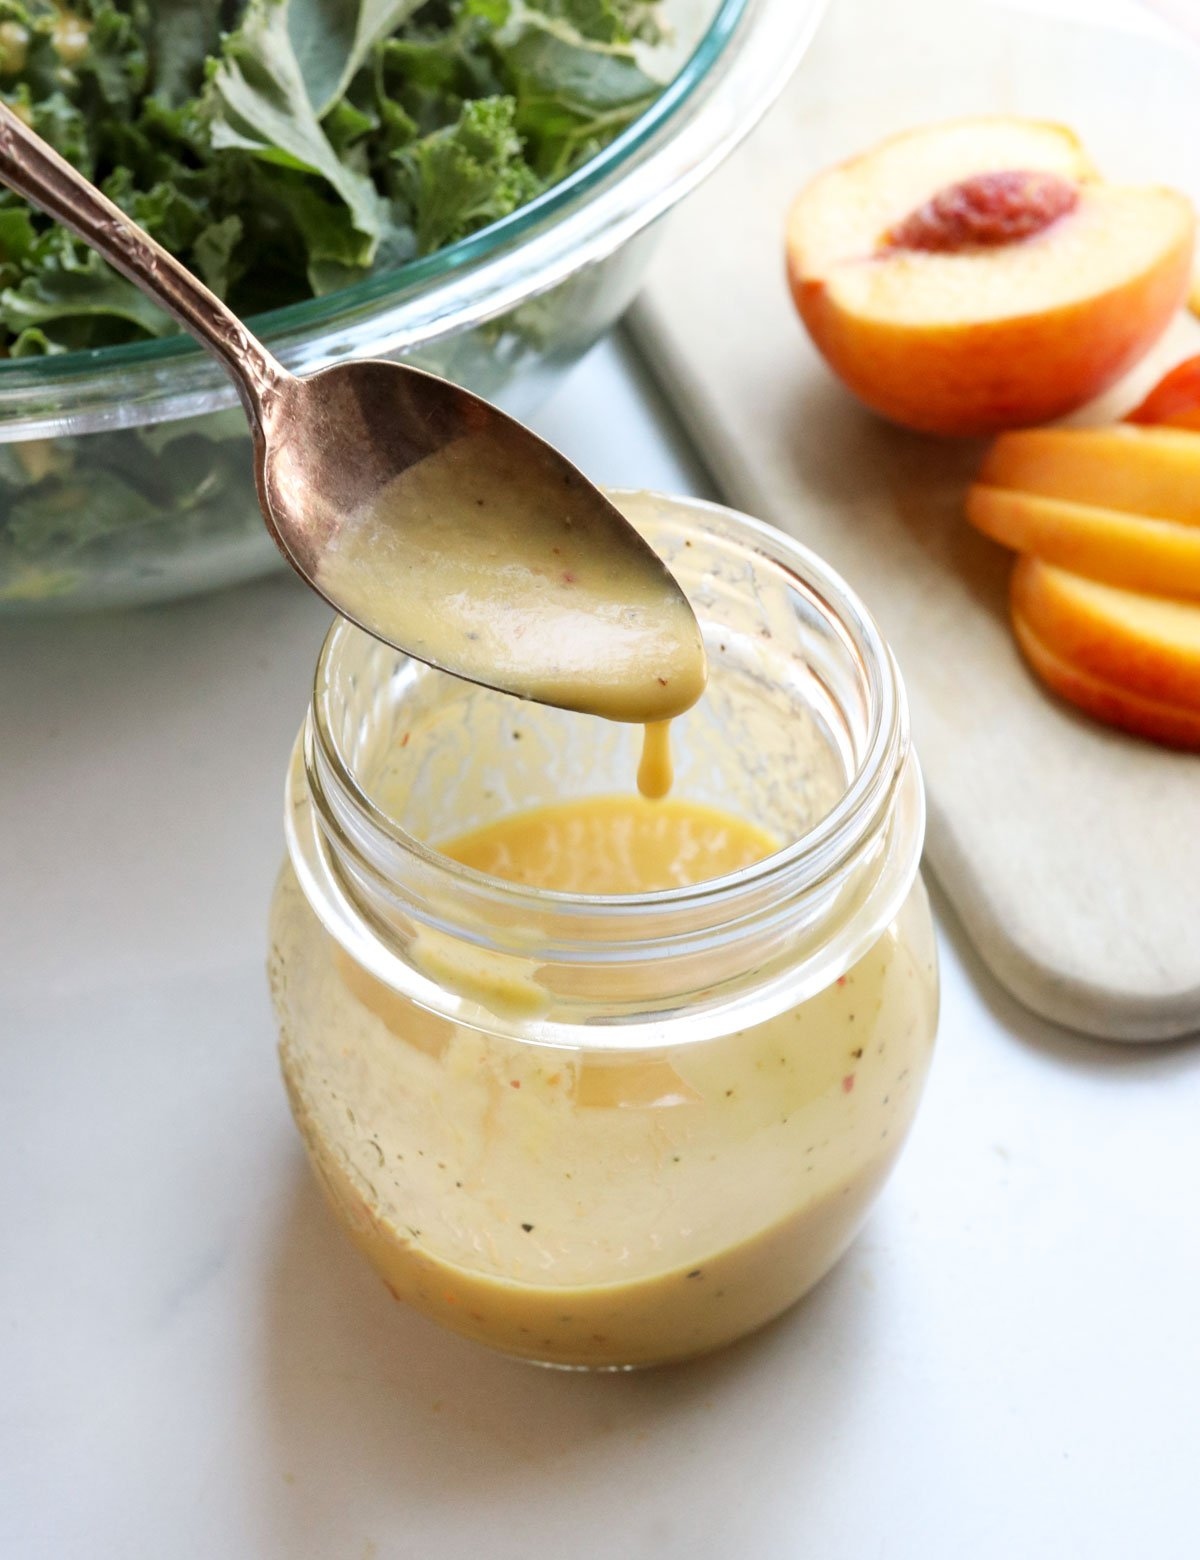 peach dressing dripping off of a spoon